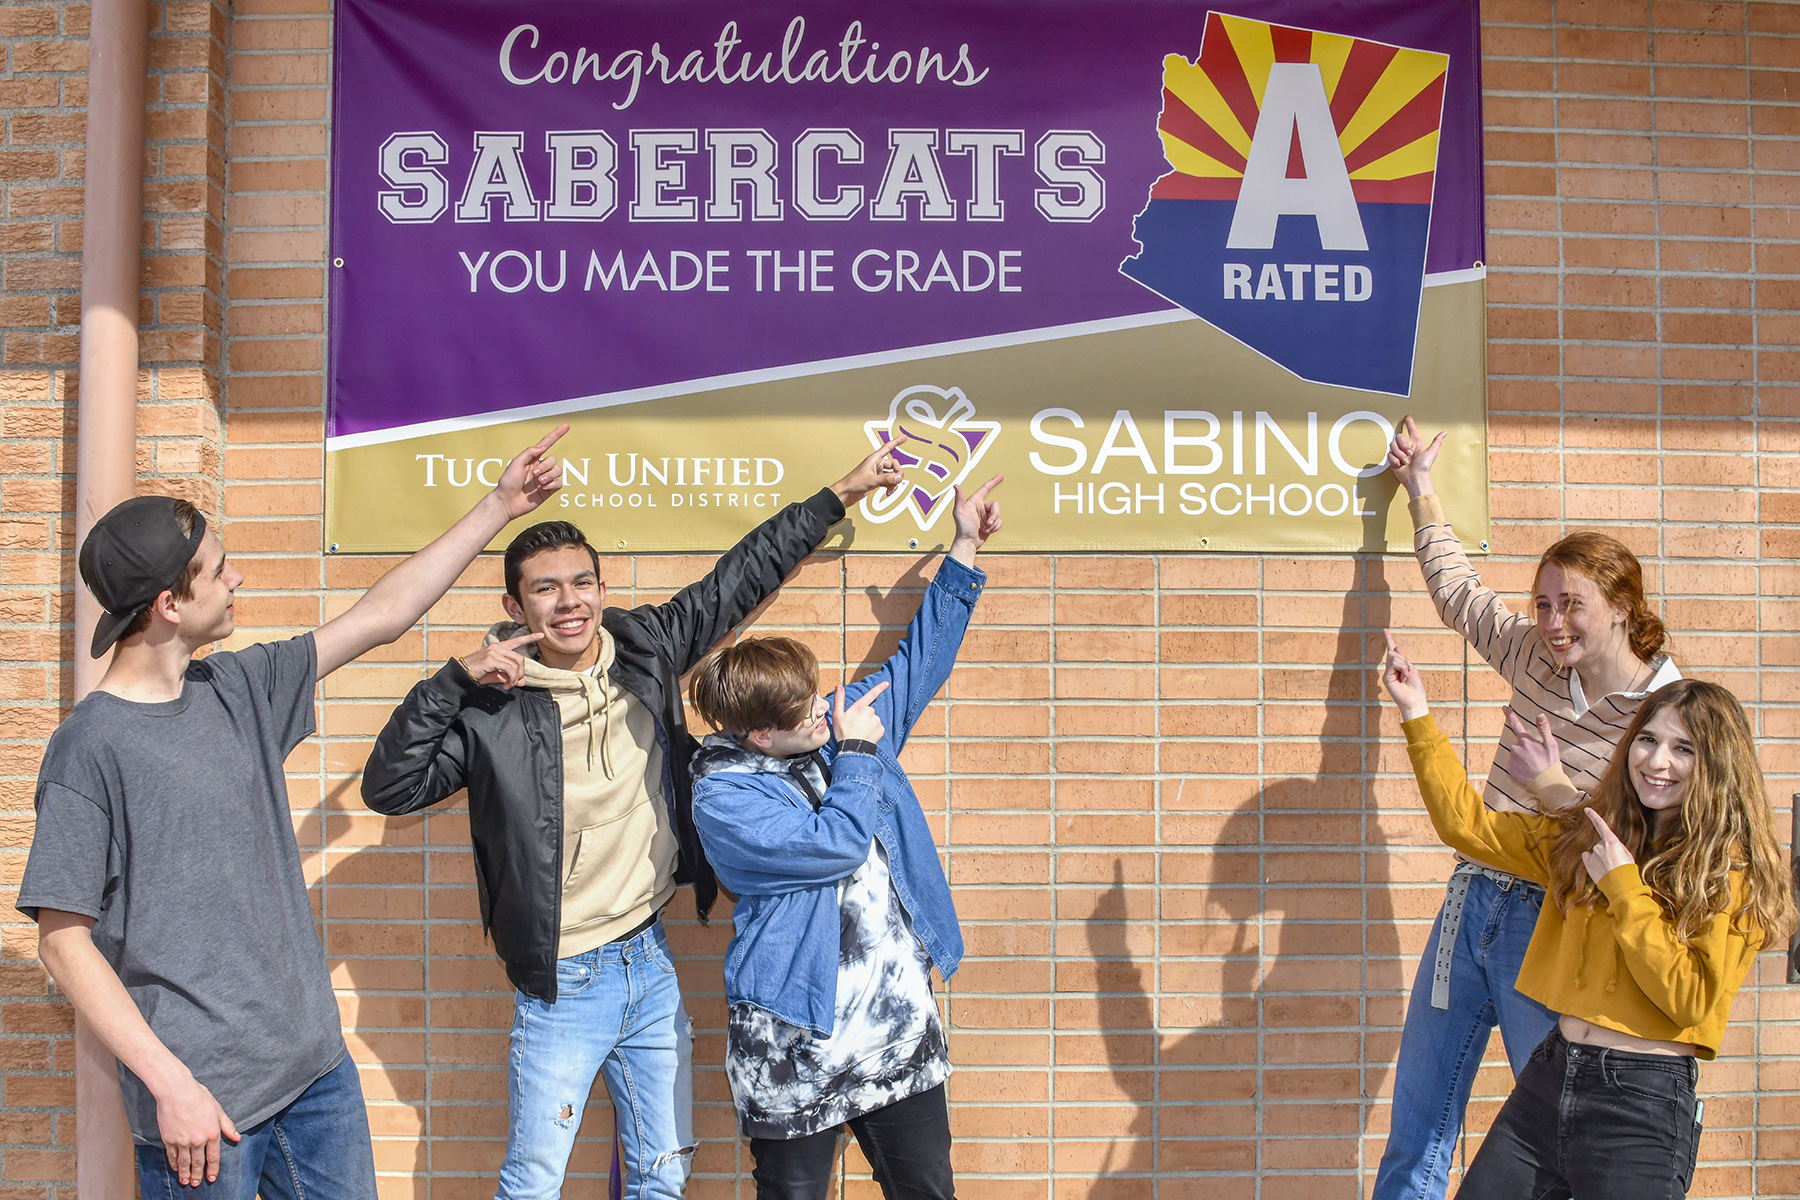 Students Pointing to new Sabino A school Banner